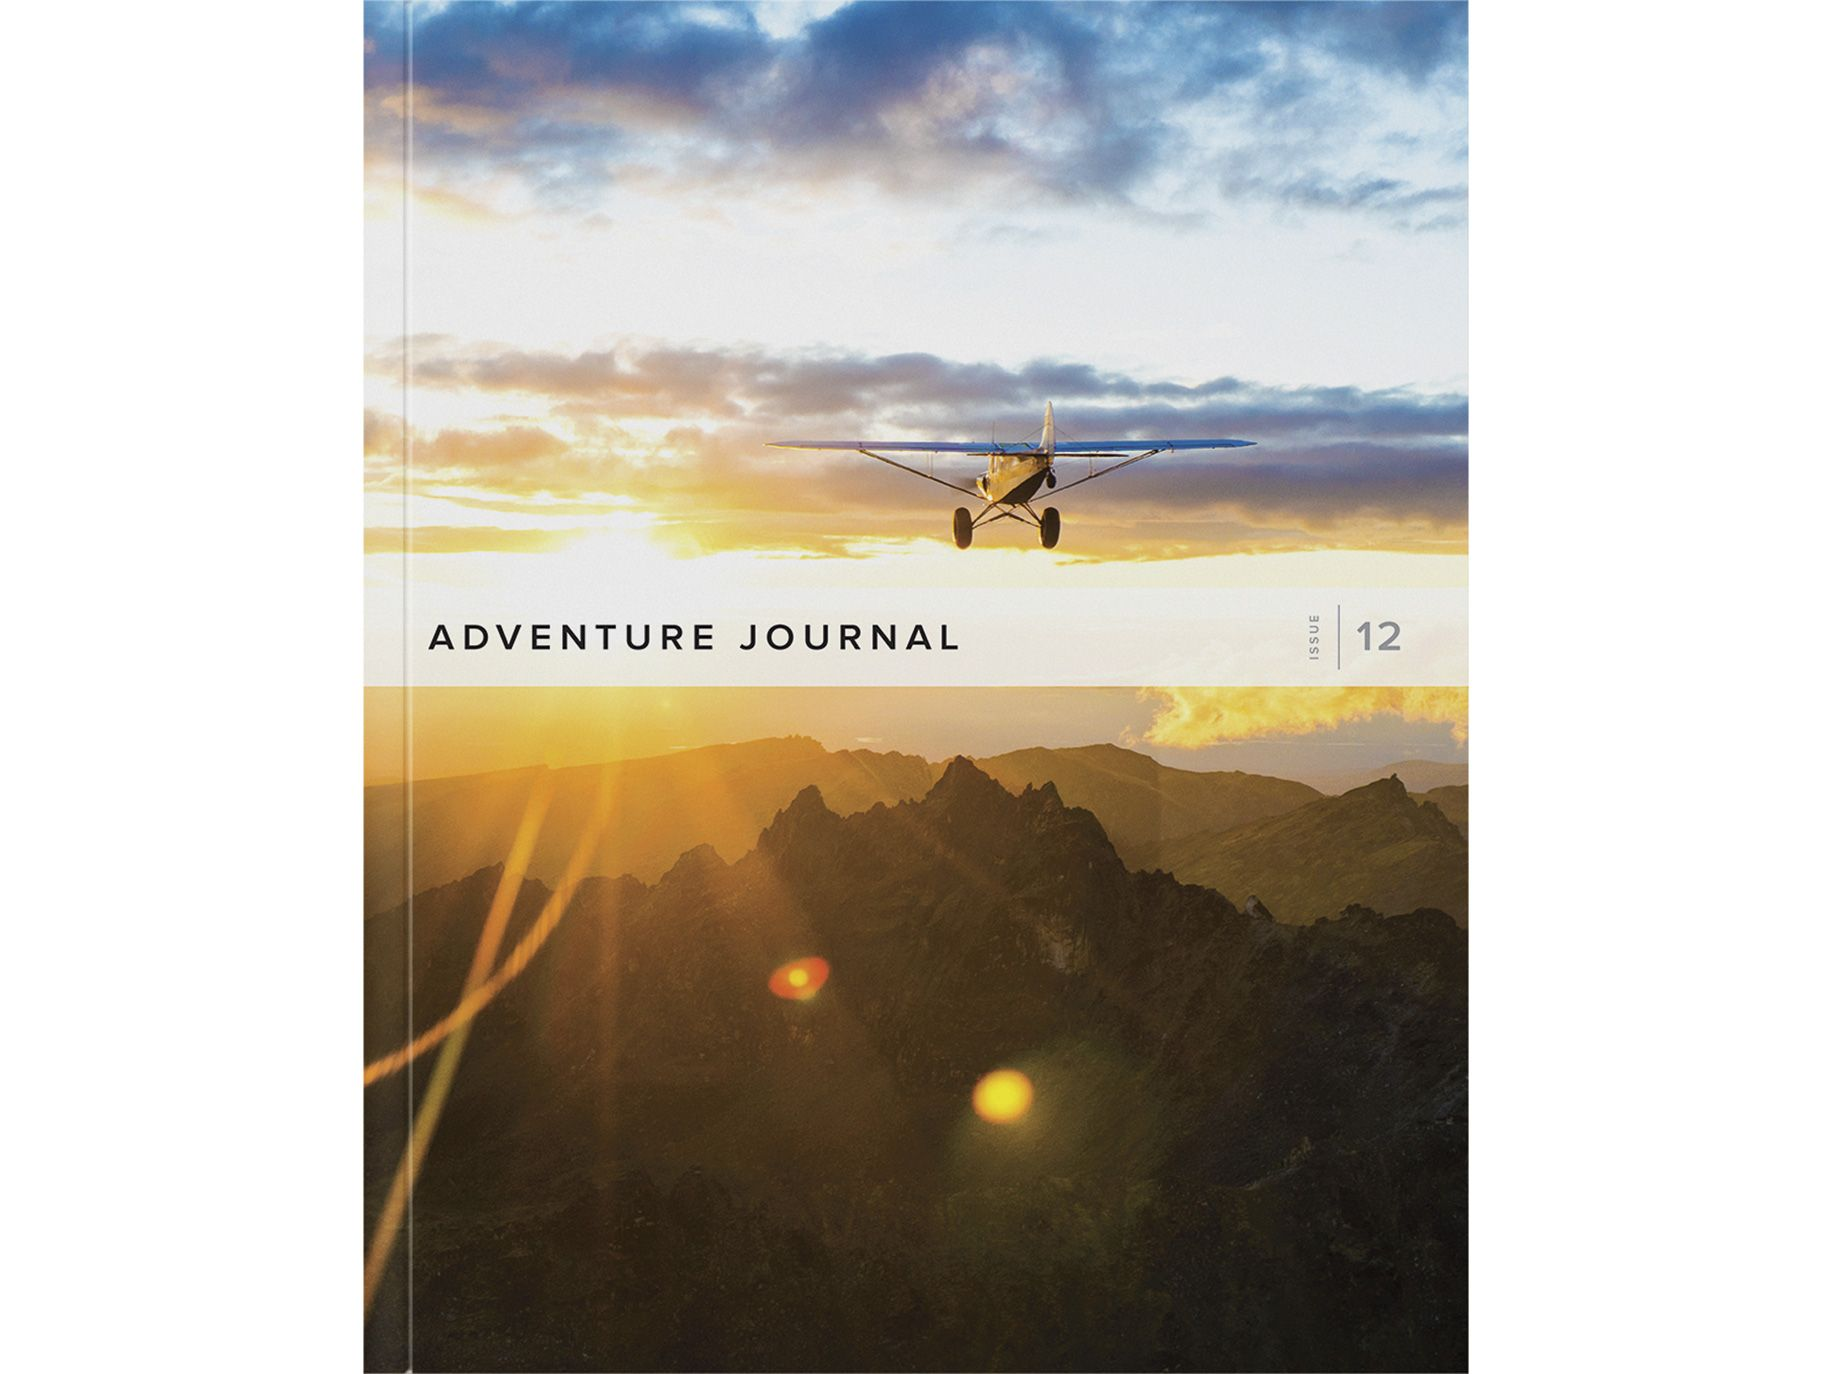 Adventure Journal issue 12 cover